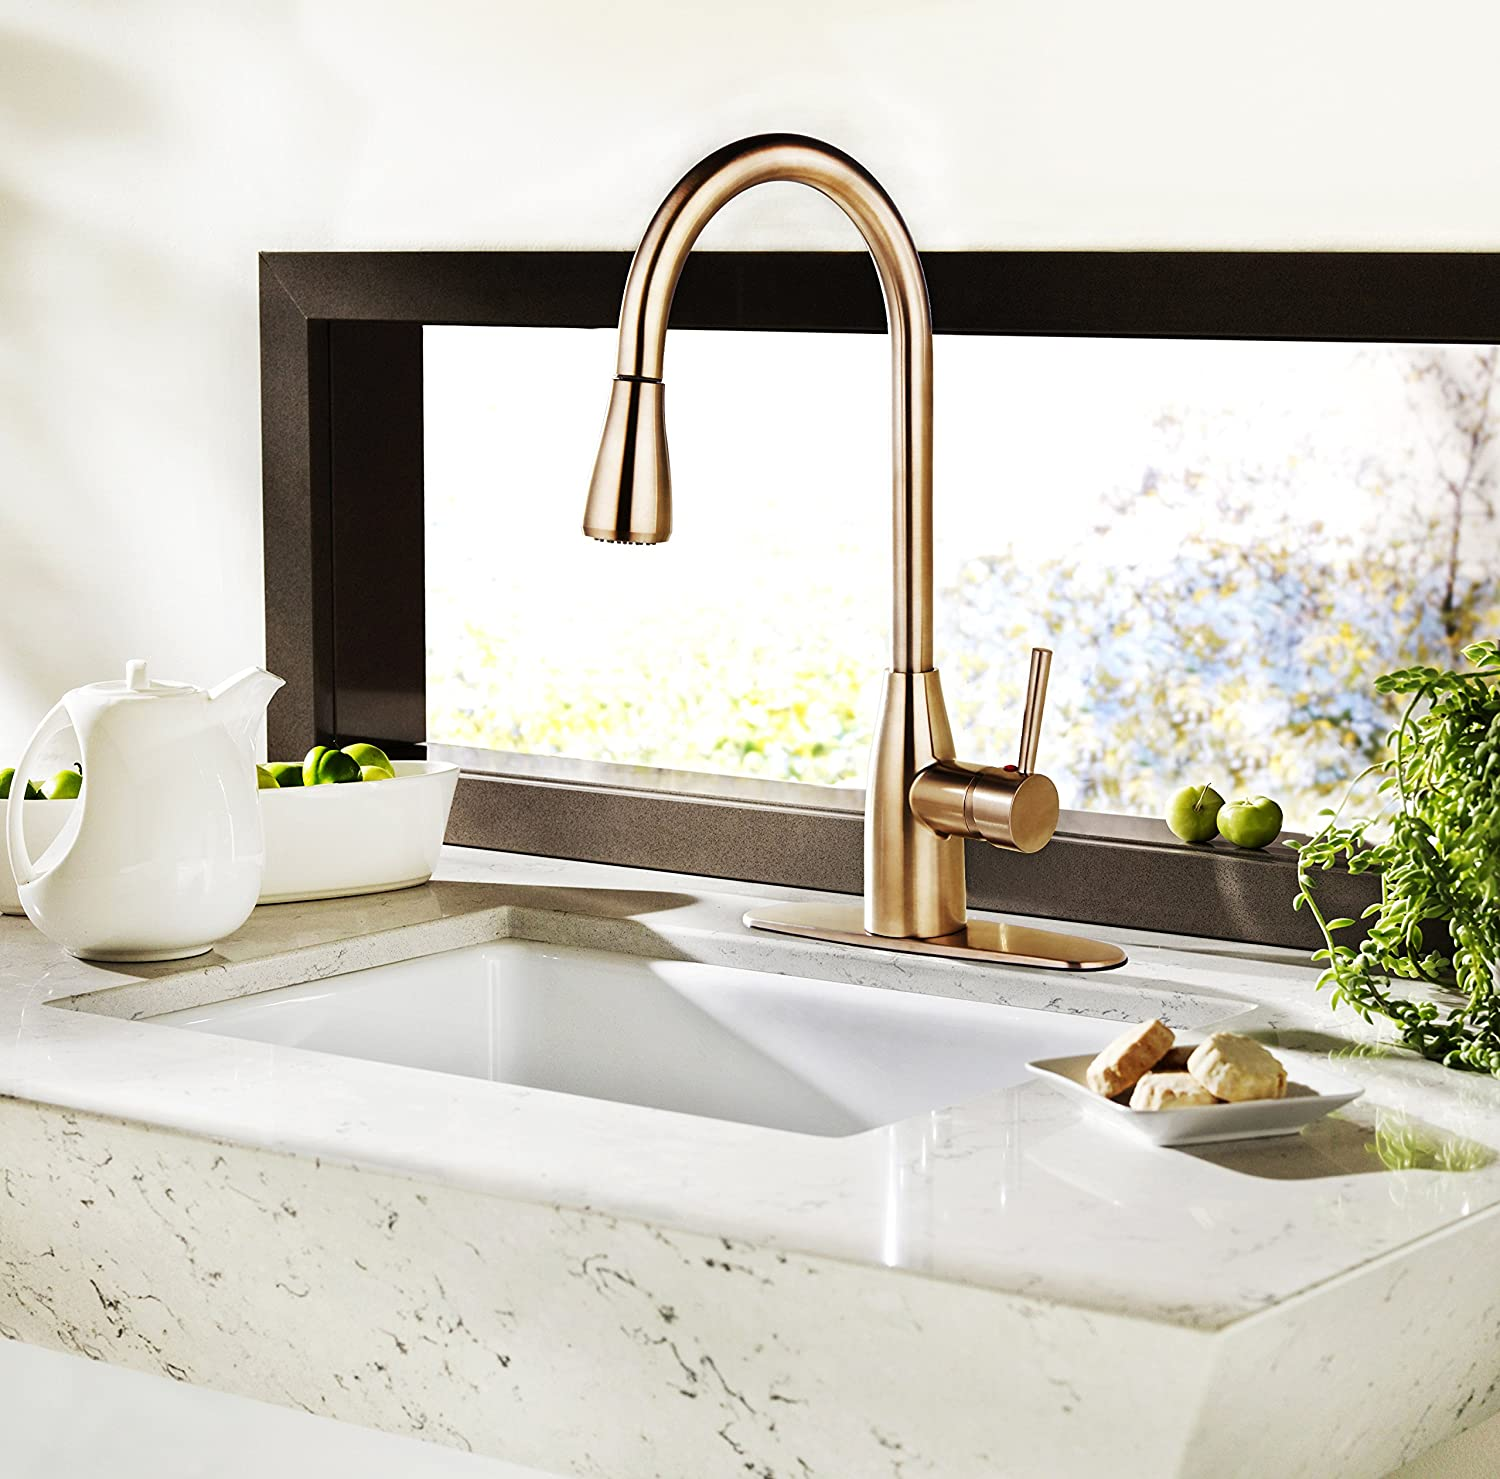 and champagne collection charming by faucets bathroom old faucet trinsic design bronze delta touch kitchen black